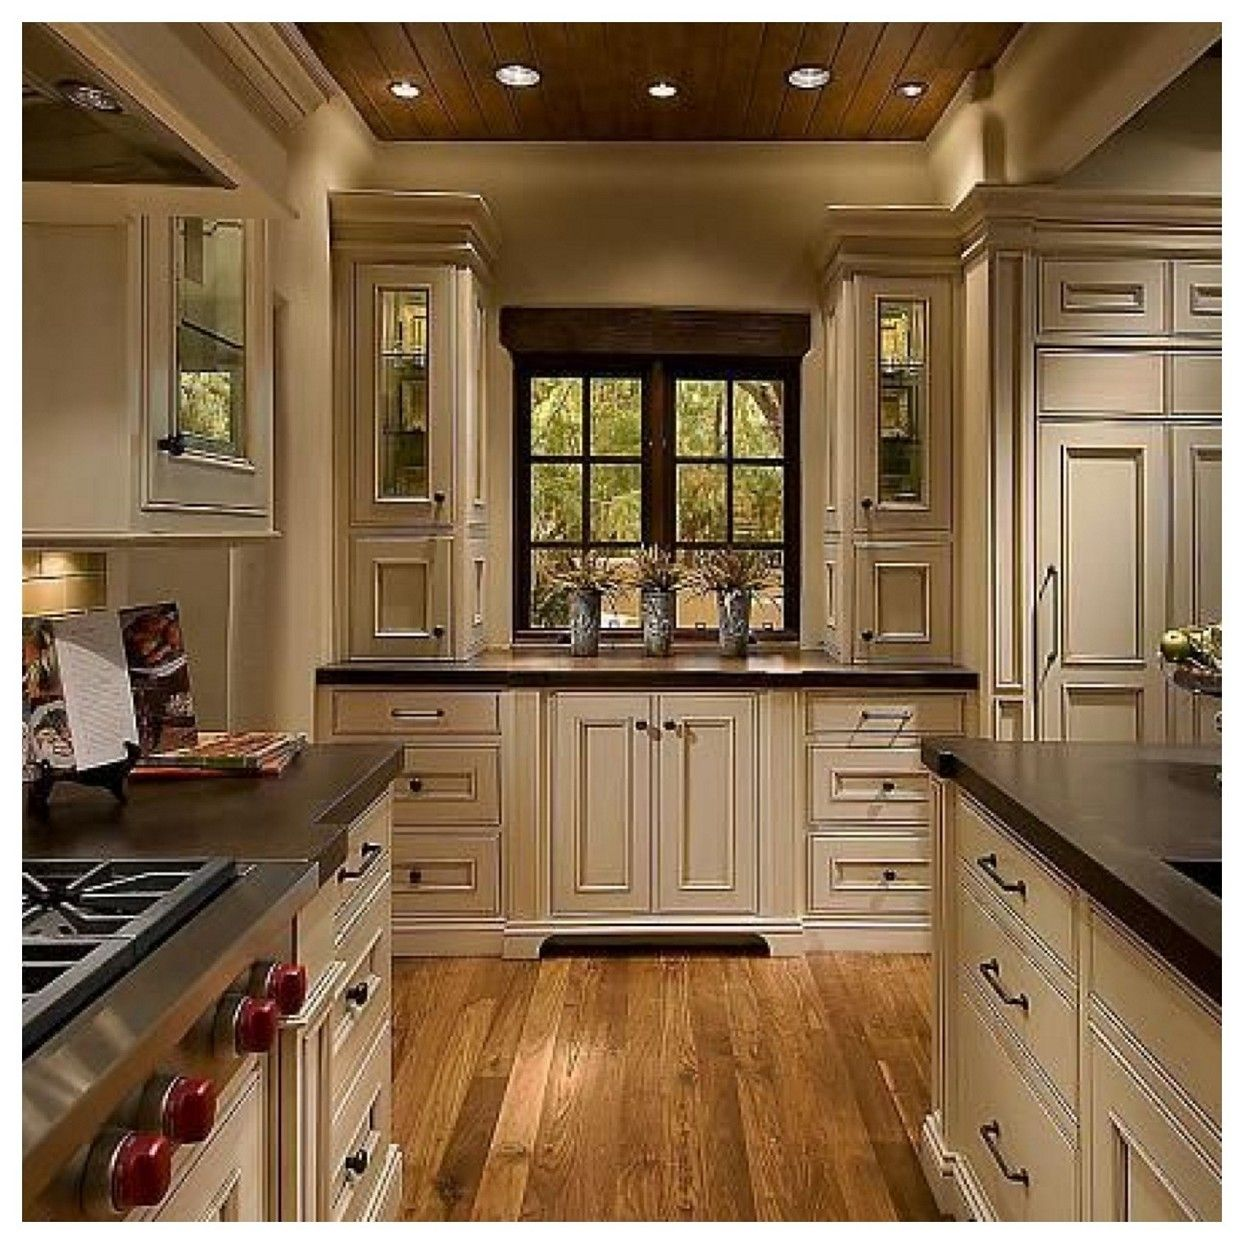 Cream Color Kitchen Cabinets With Dark Floors Country Kitchen Designs Cherry Cabinets Kitchen Kitchen Design